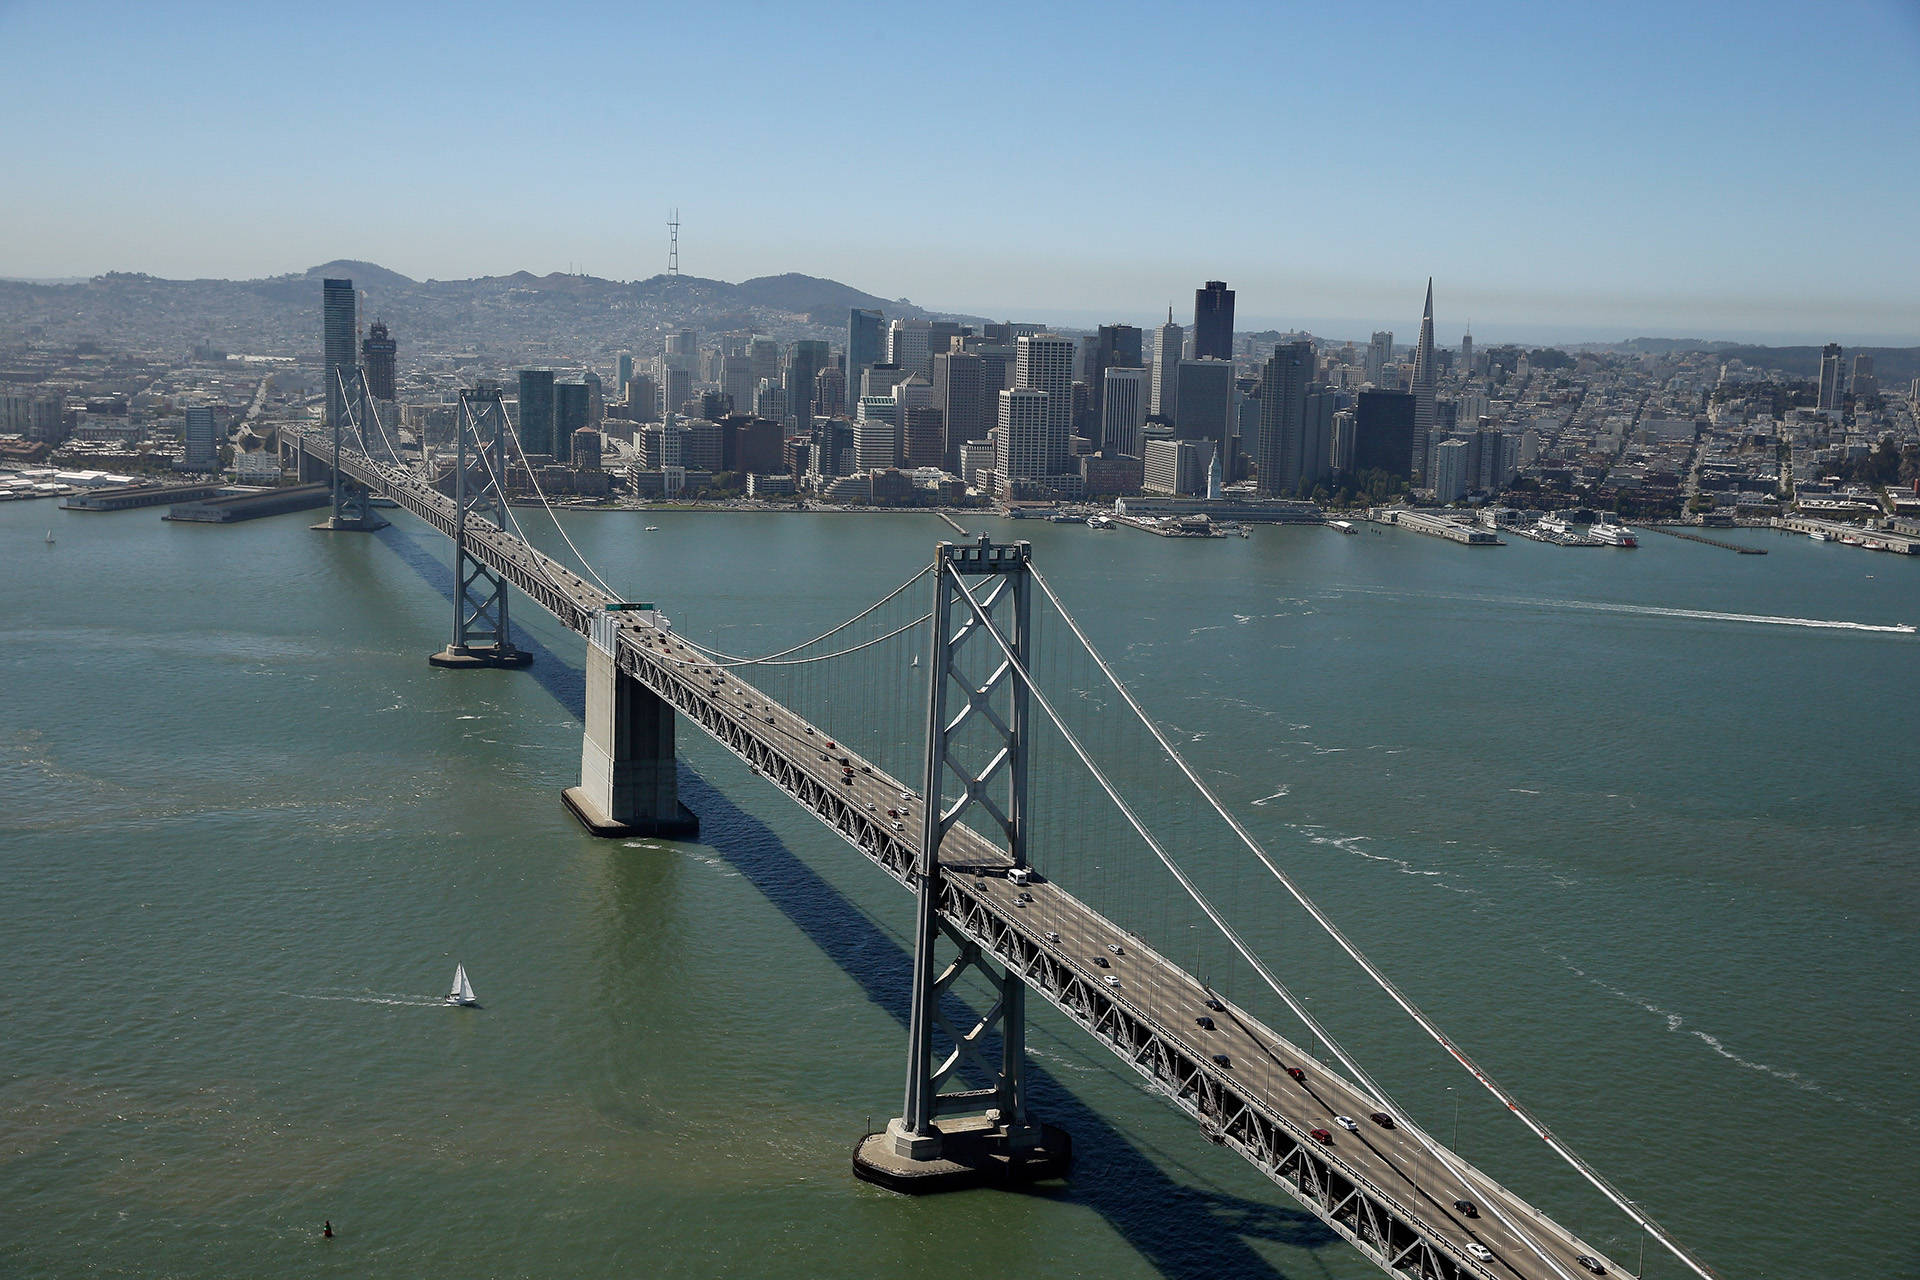 At many times of the day, you might best describe the color of the bay as 'artichoke.'    Ezra Shaw/Getty Images